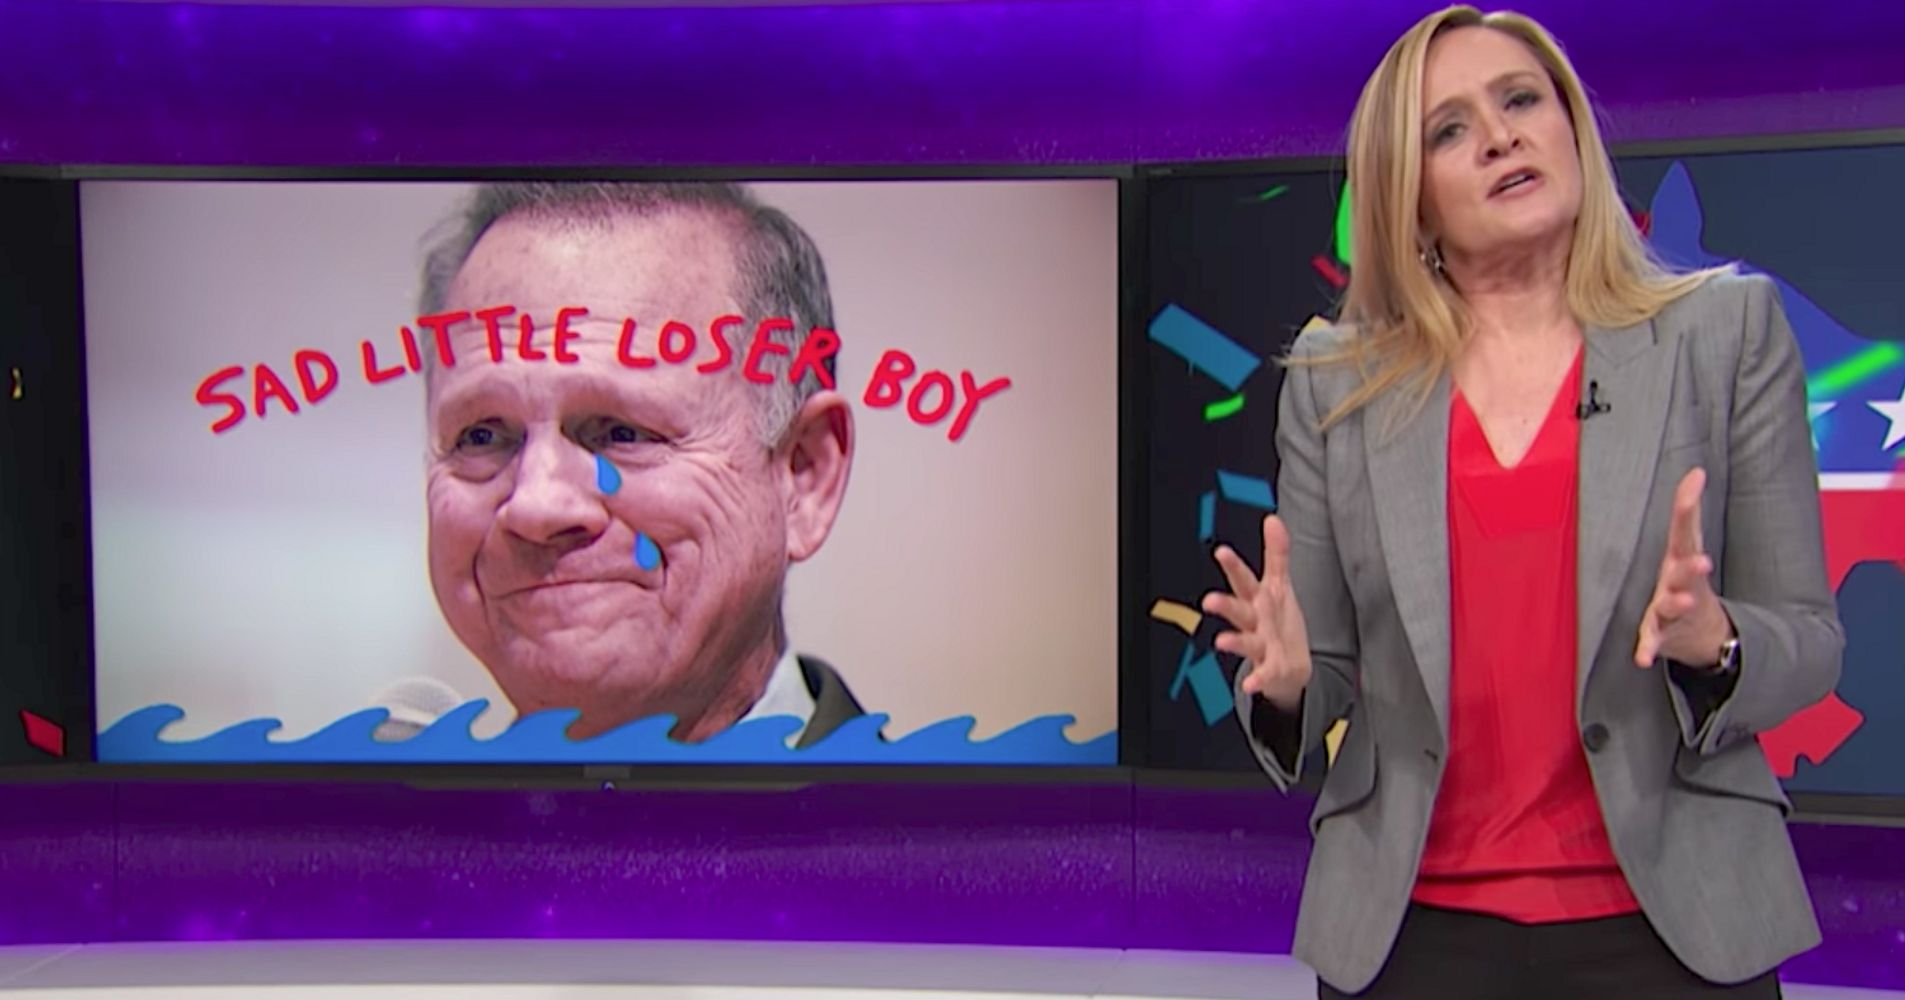 Samantha Bee Dedicates The 'Amazing' Defeat Of Roy Moore To His Accusers